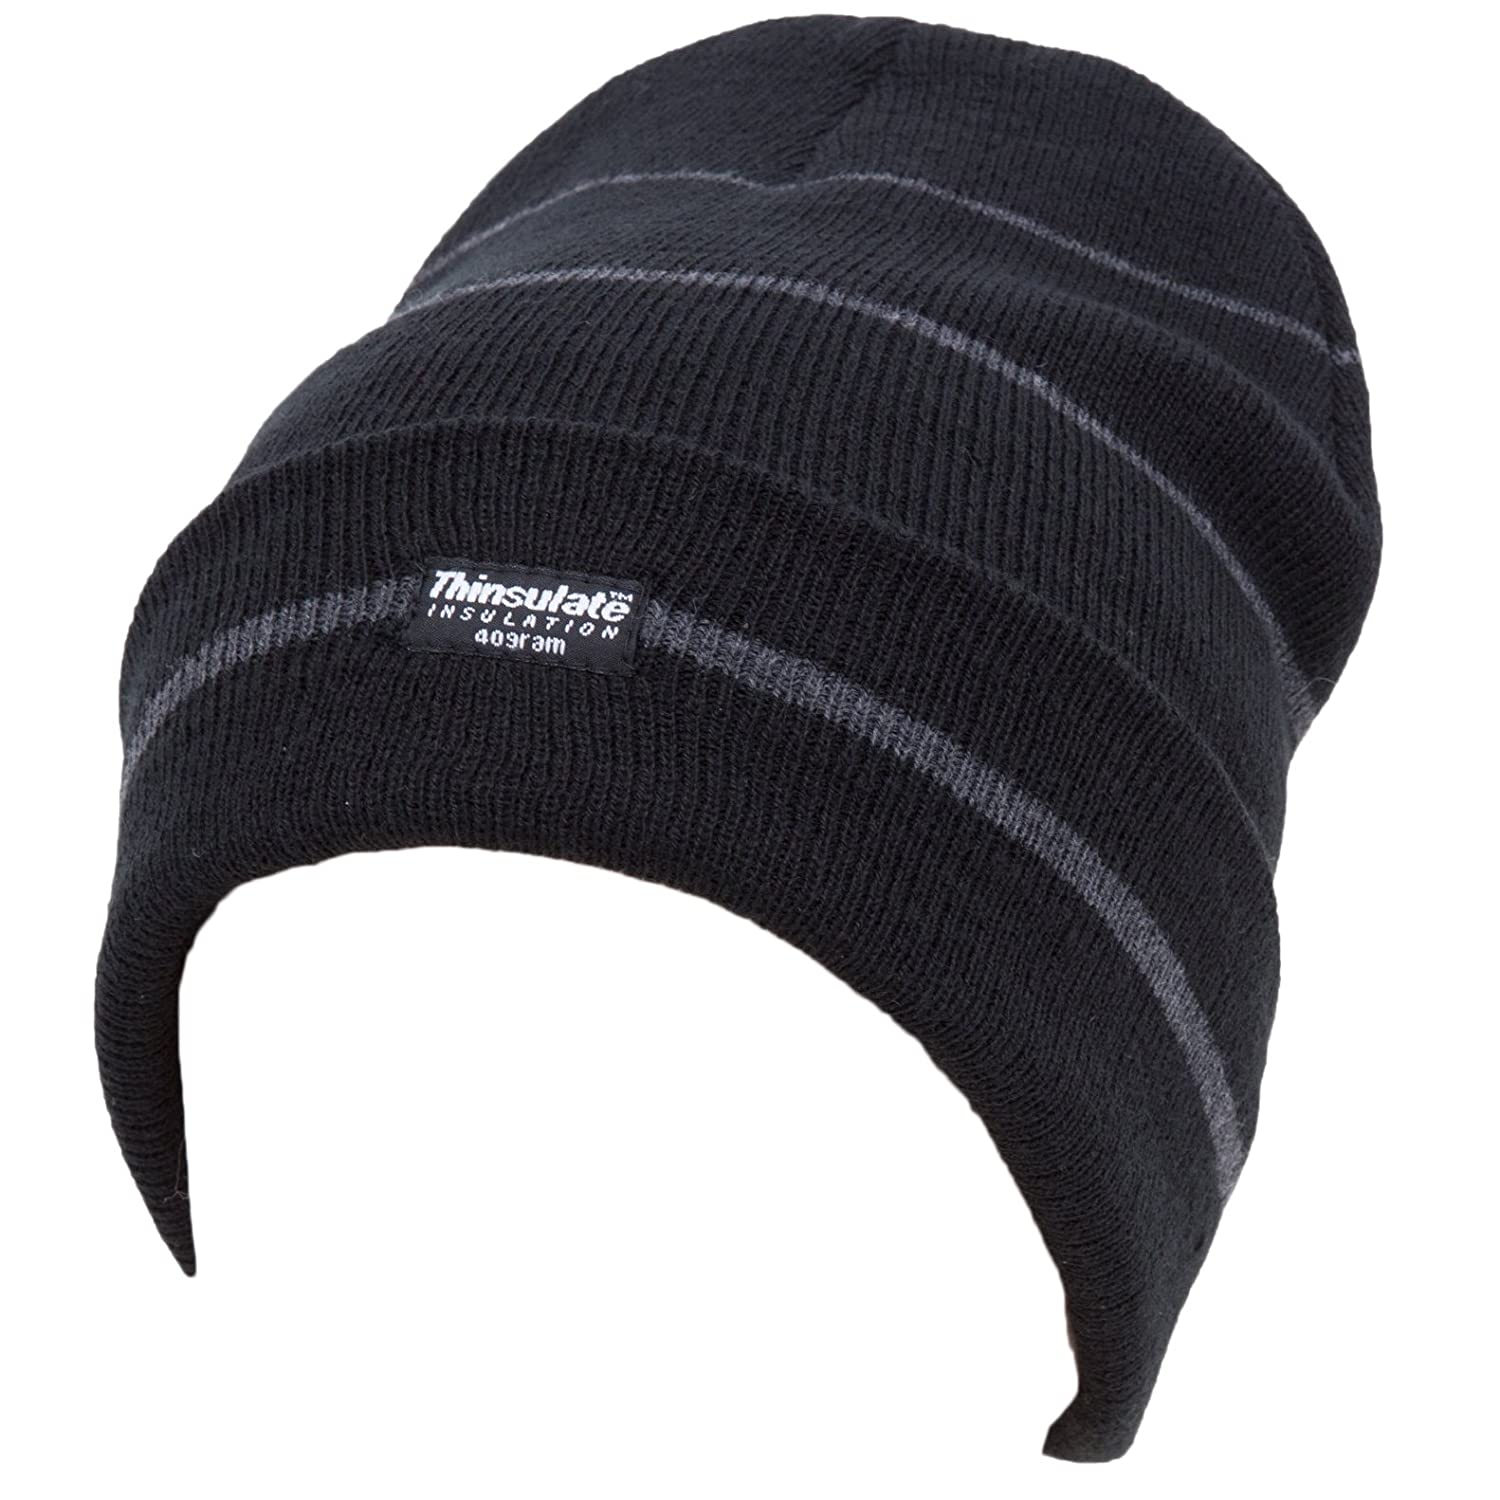 01a28b1d7cc Amazon.com  Universal Textiles Mens Striped Thinsulate Knitted Thermal  Winter Ski Hat (3M 40g) (One Size) (Grey Black Stripes)  Clothing